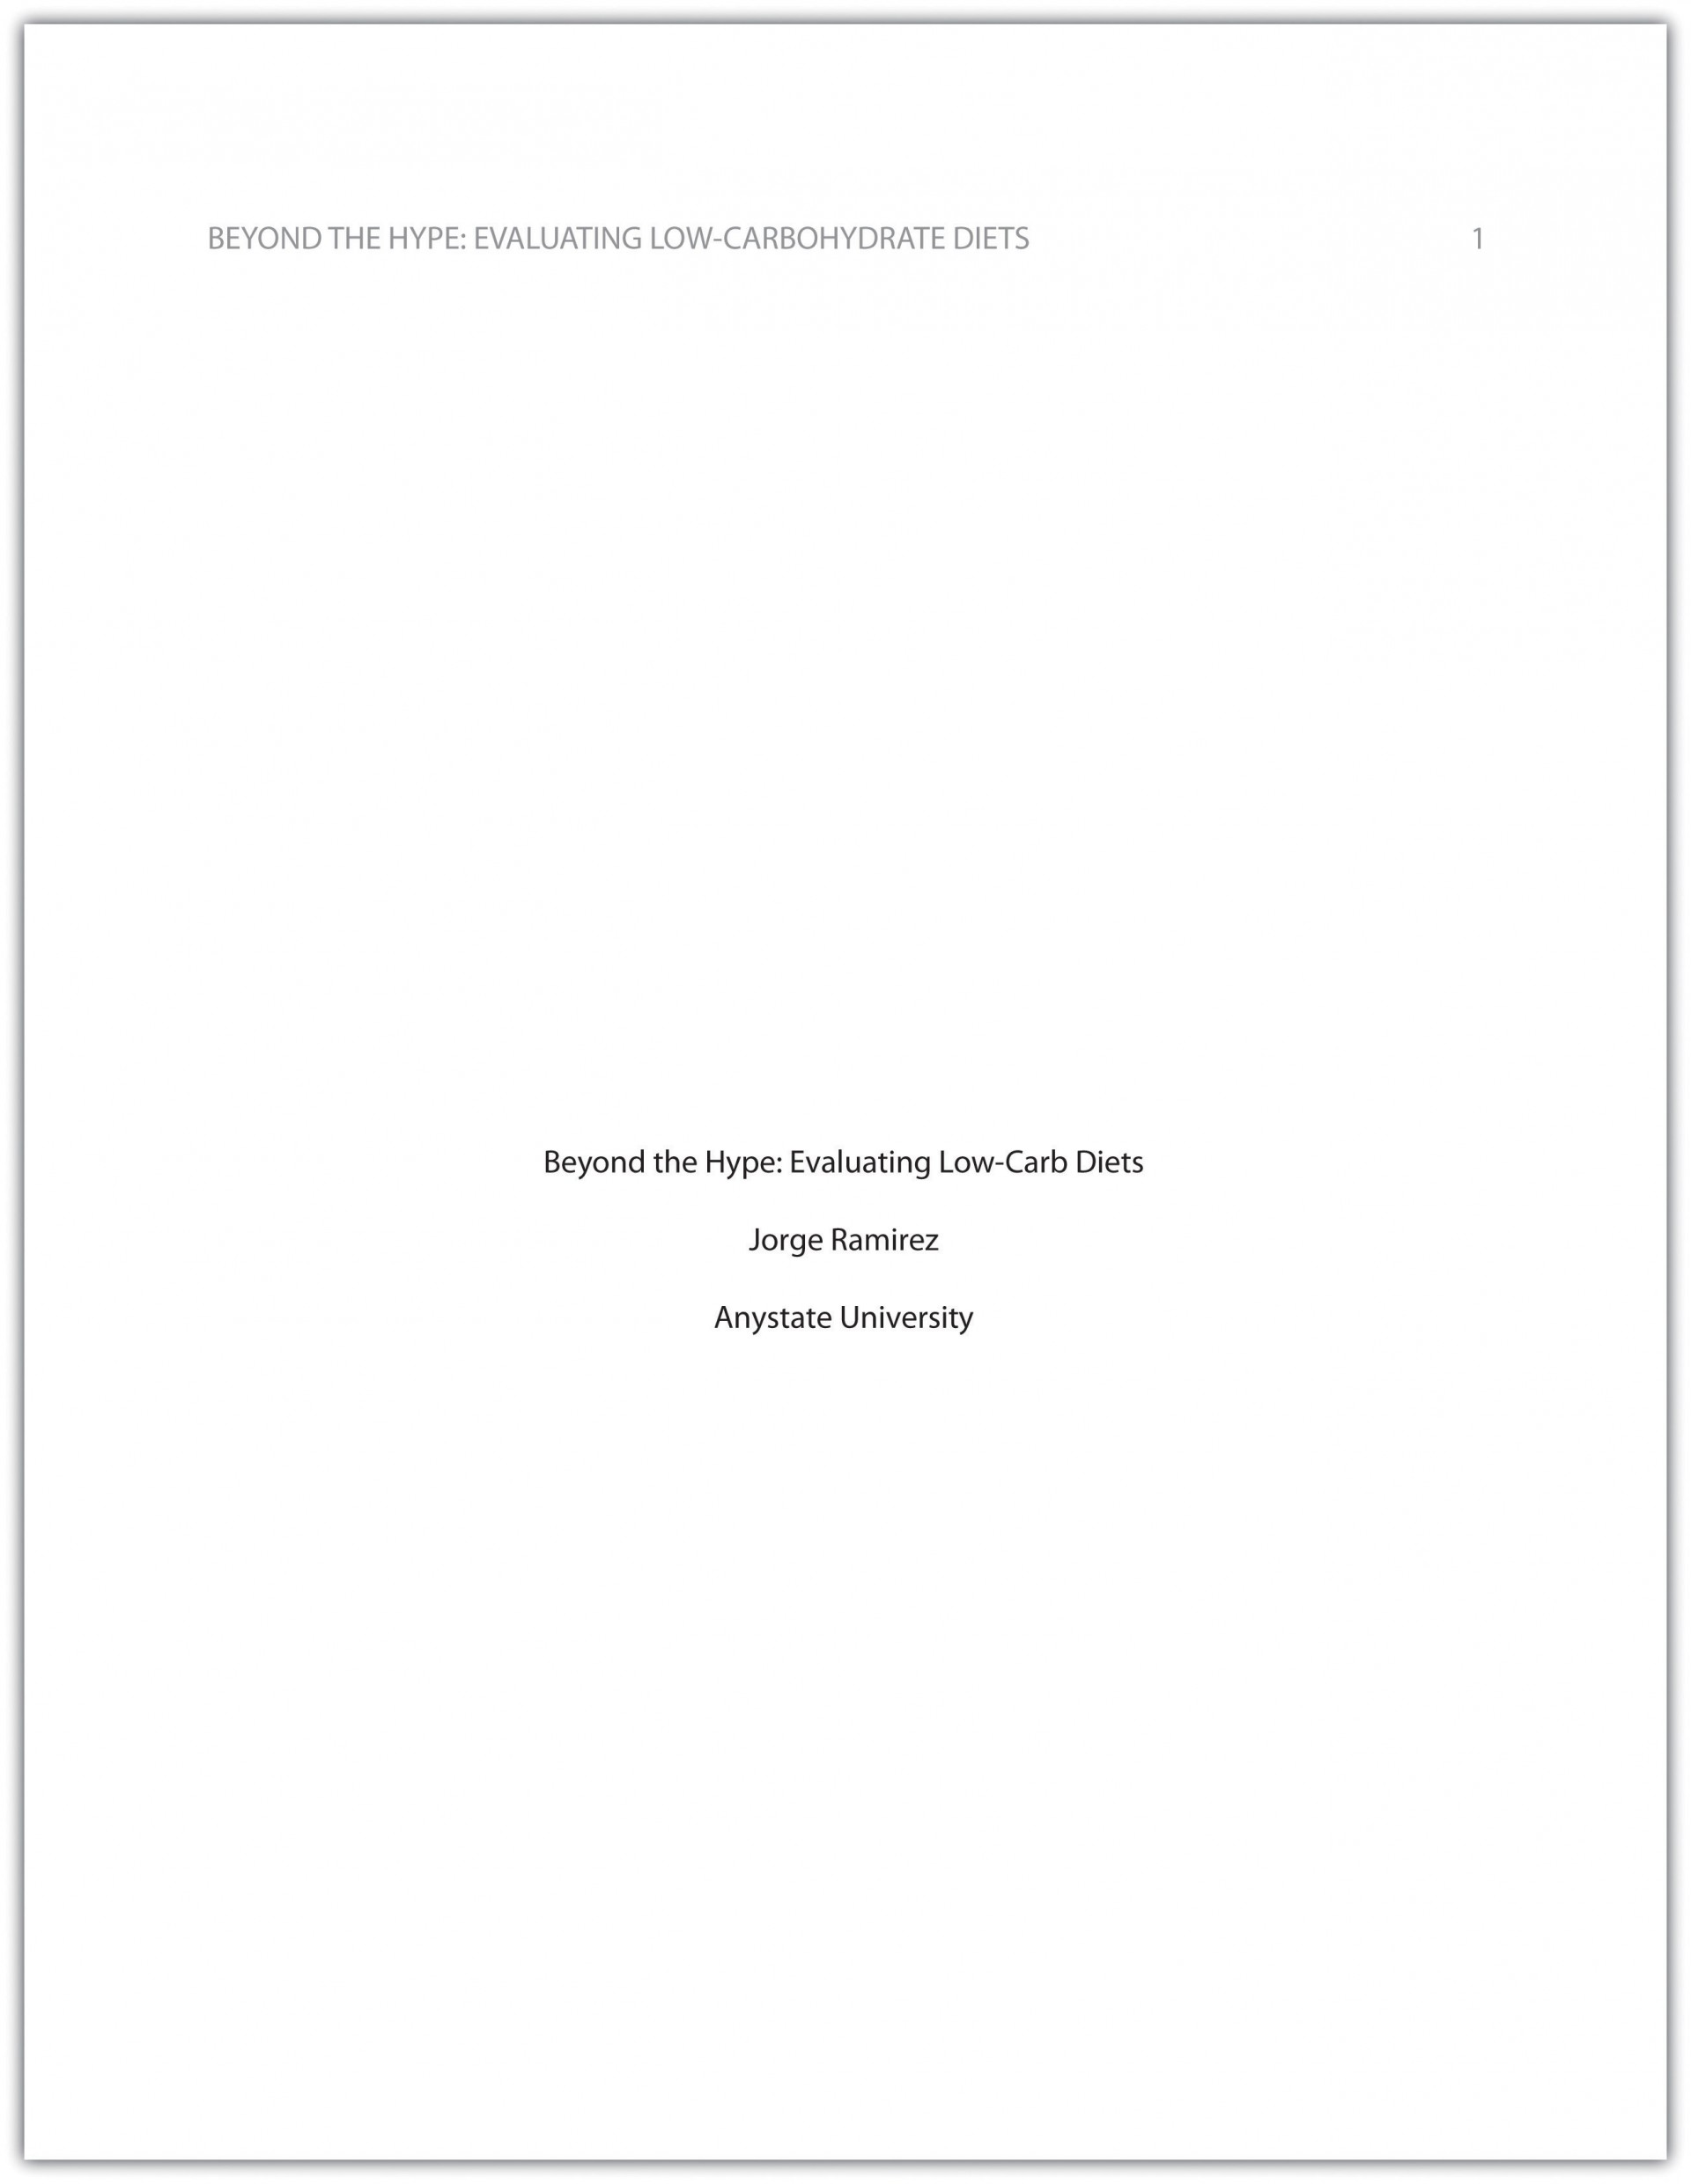 003 Research Paper Cover Page For Best Mla Reference Example Format 1920